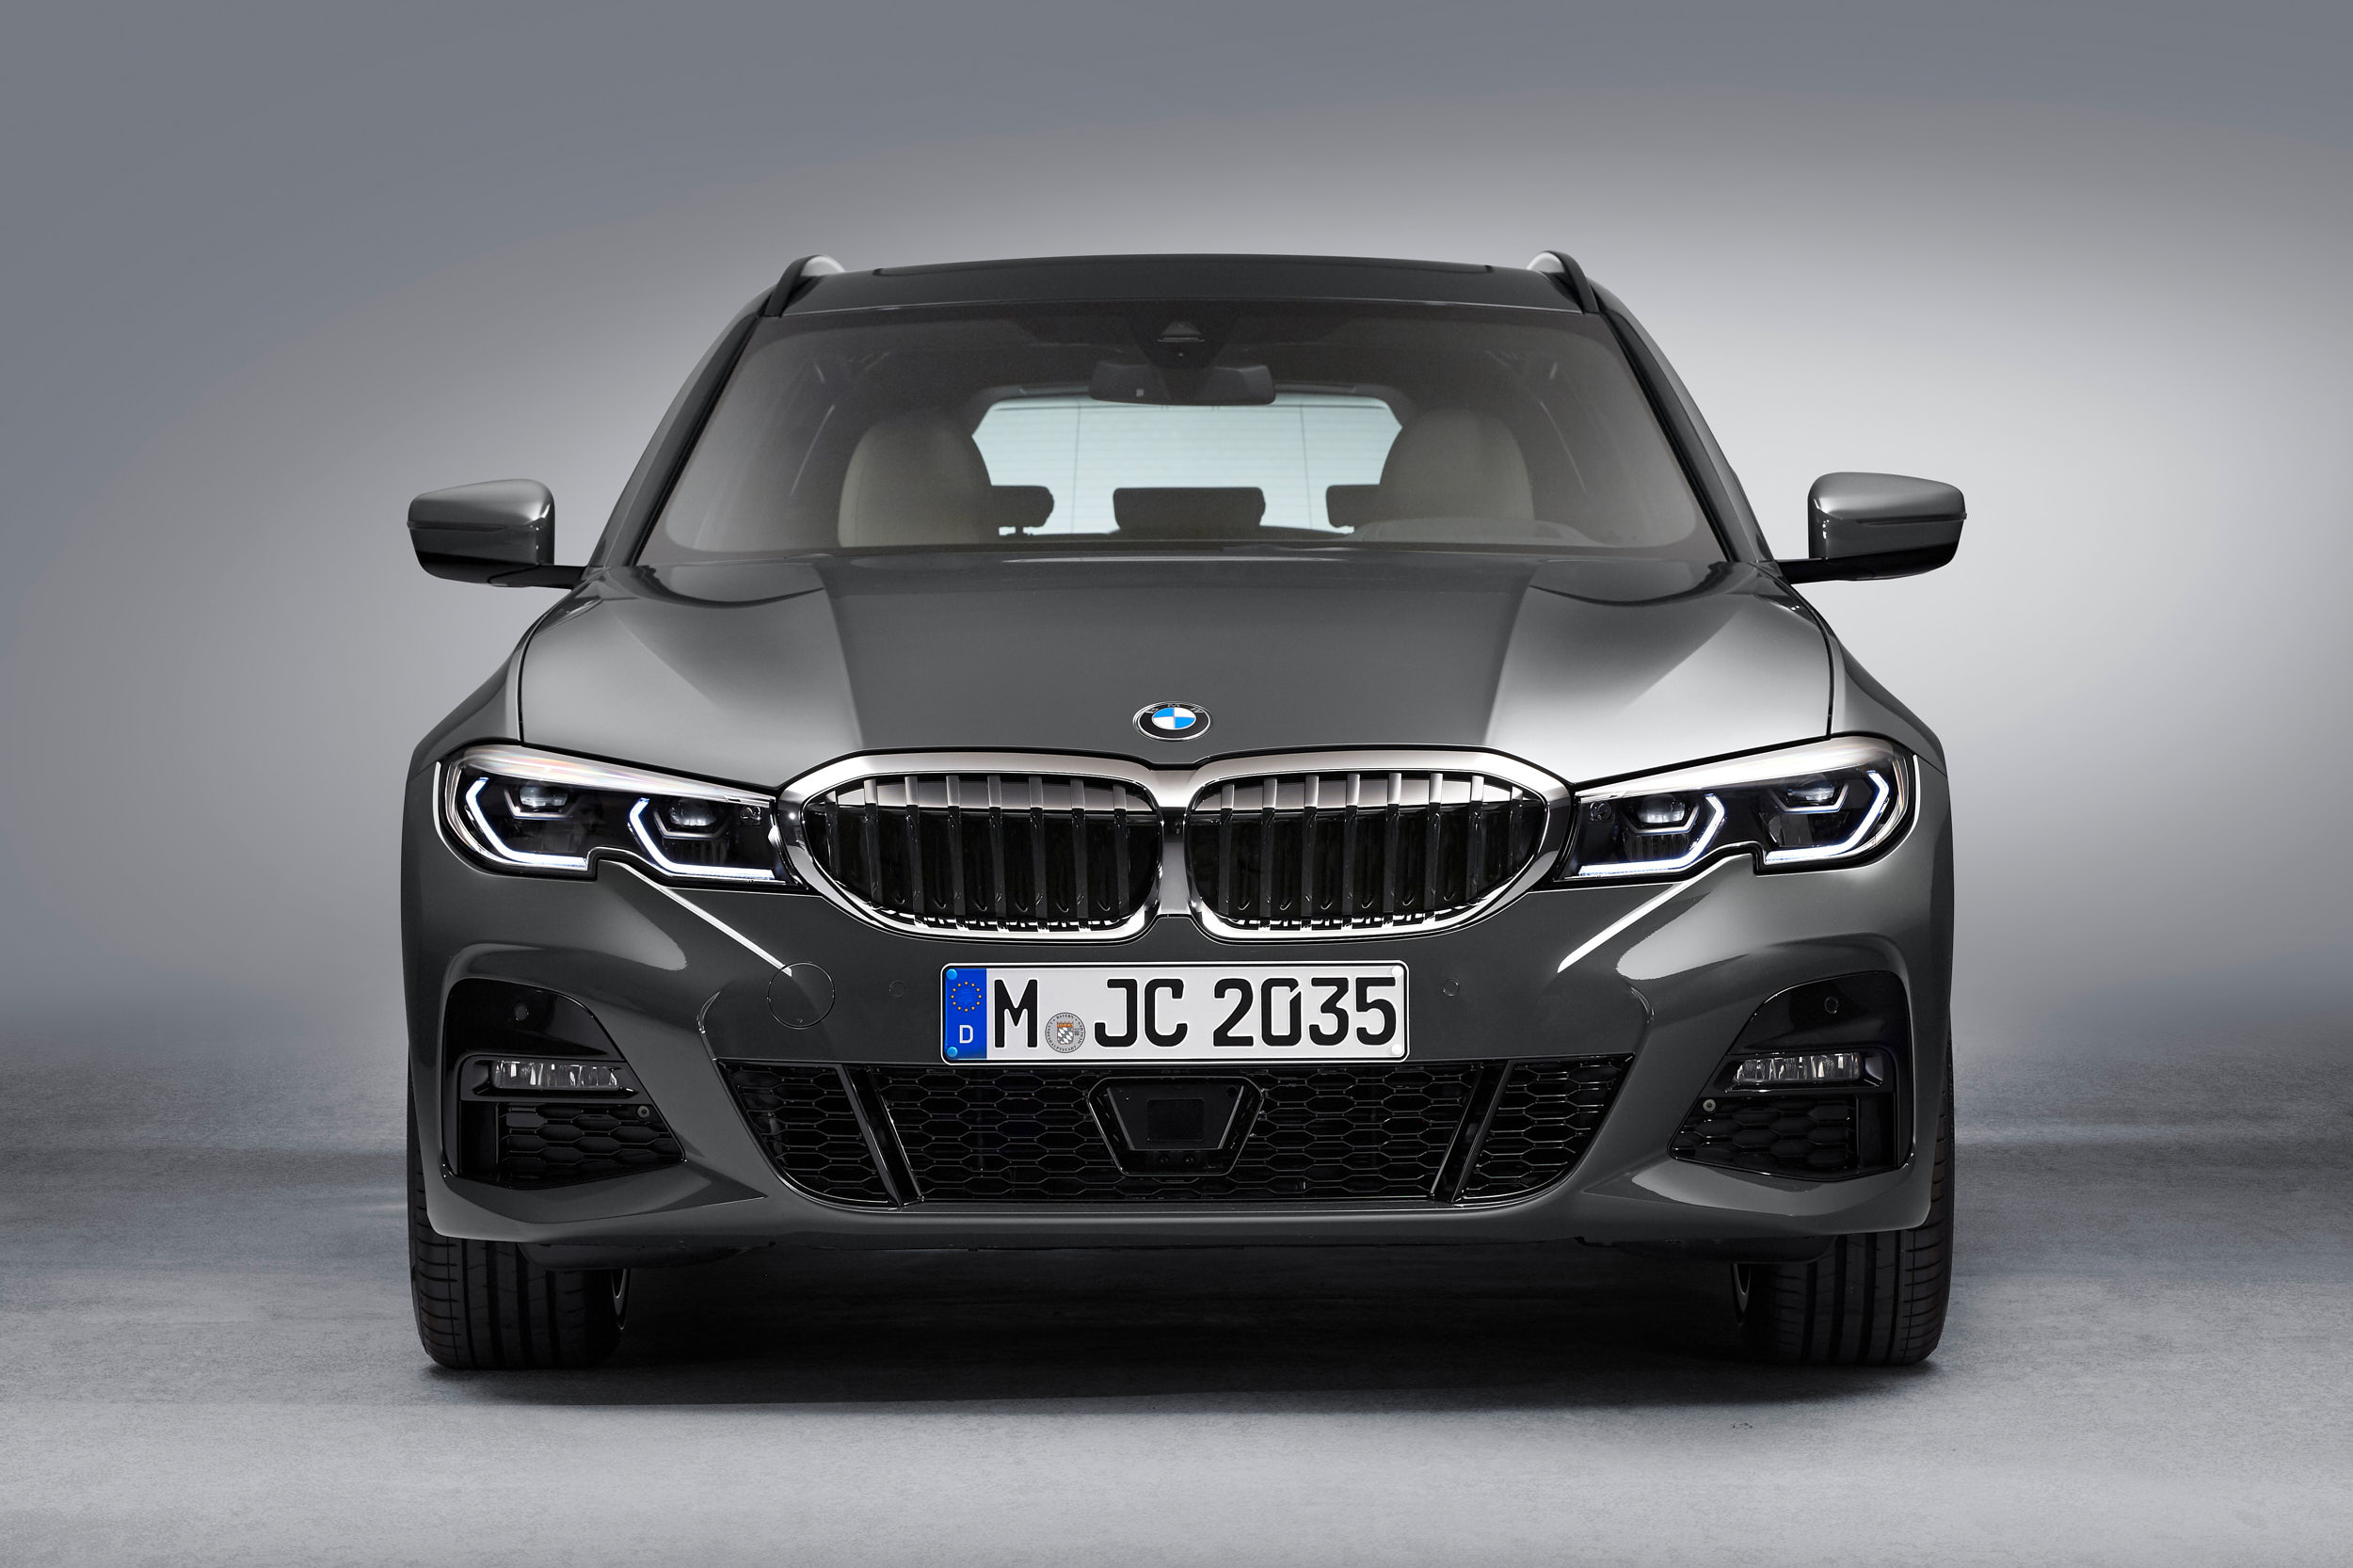 06_0519_BMW_3Touring_EXT_Front_01_web